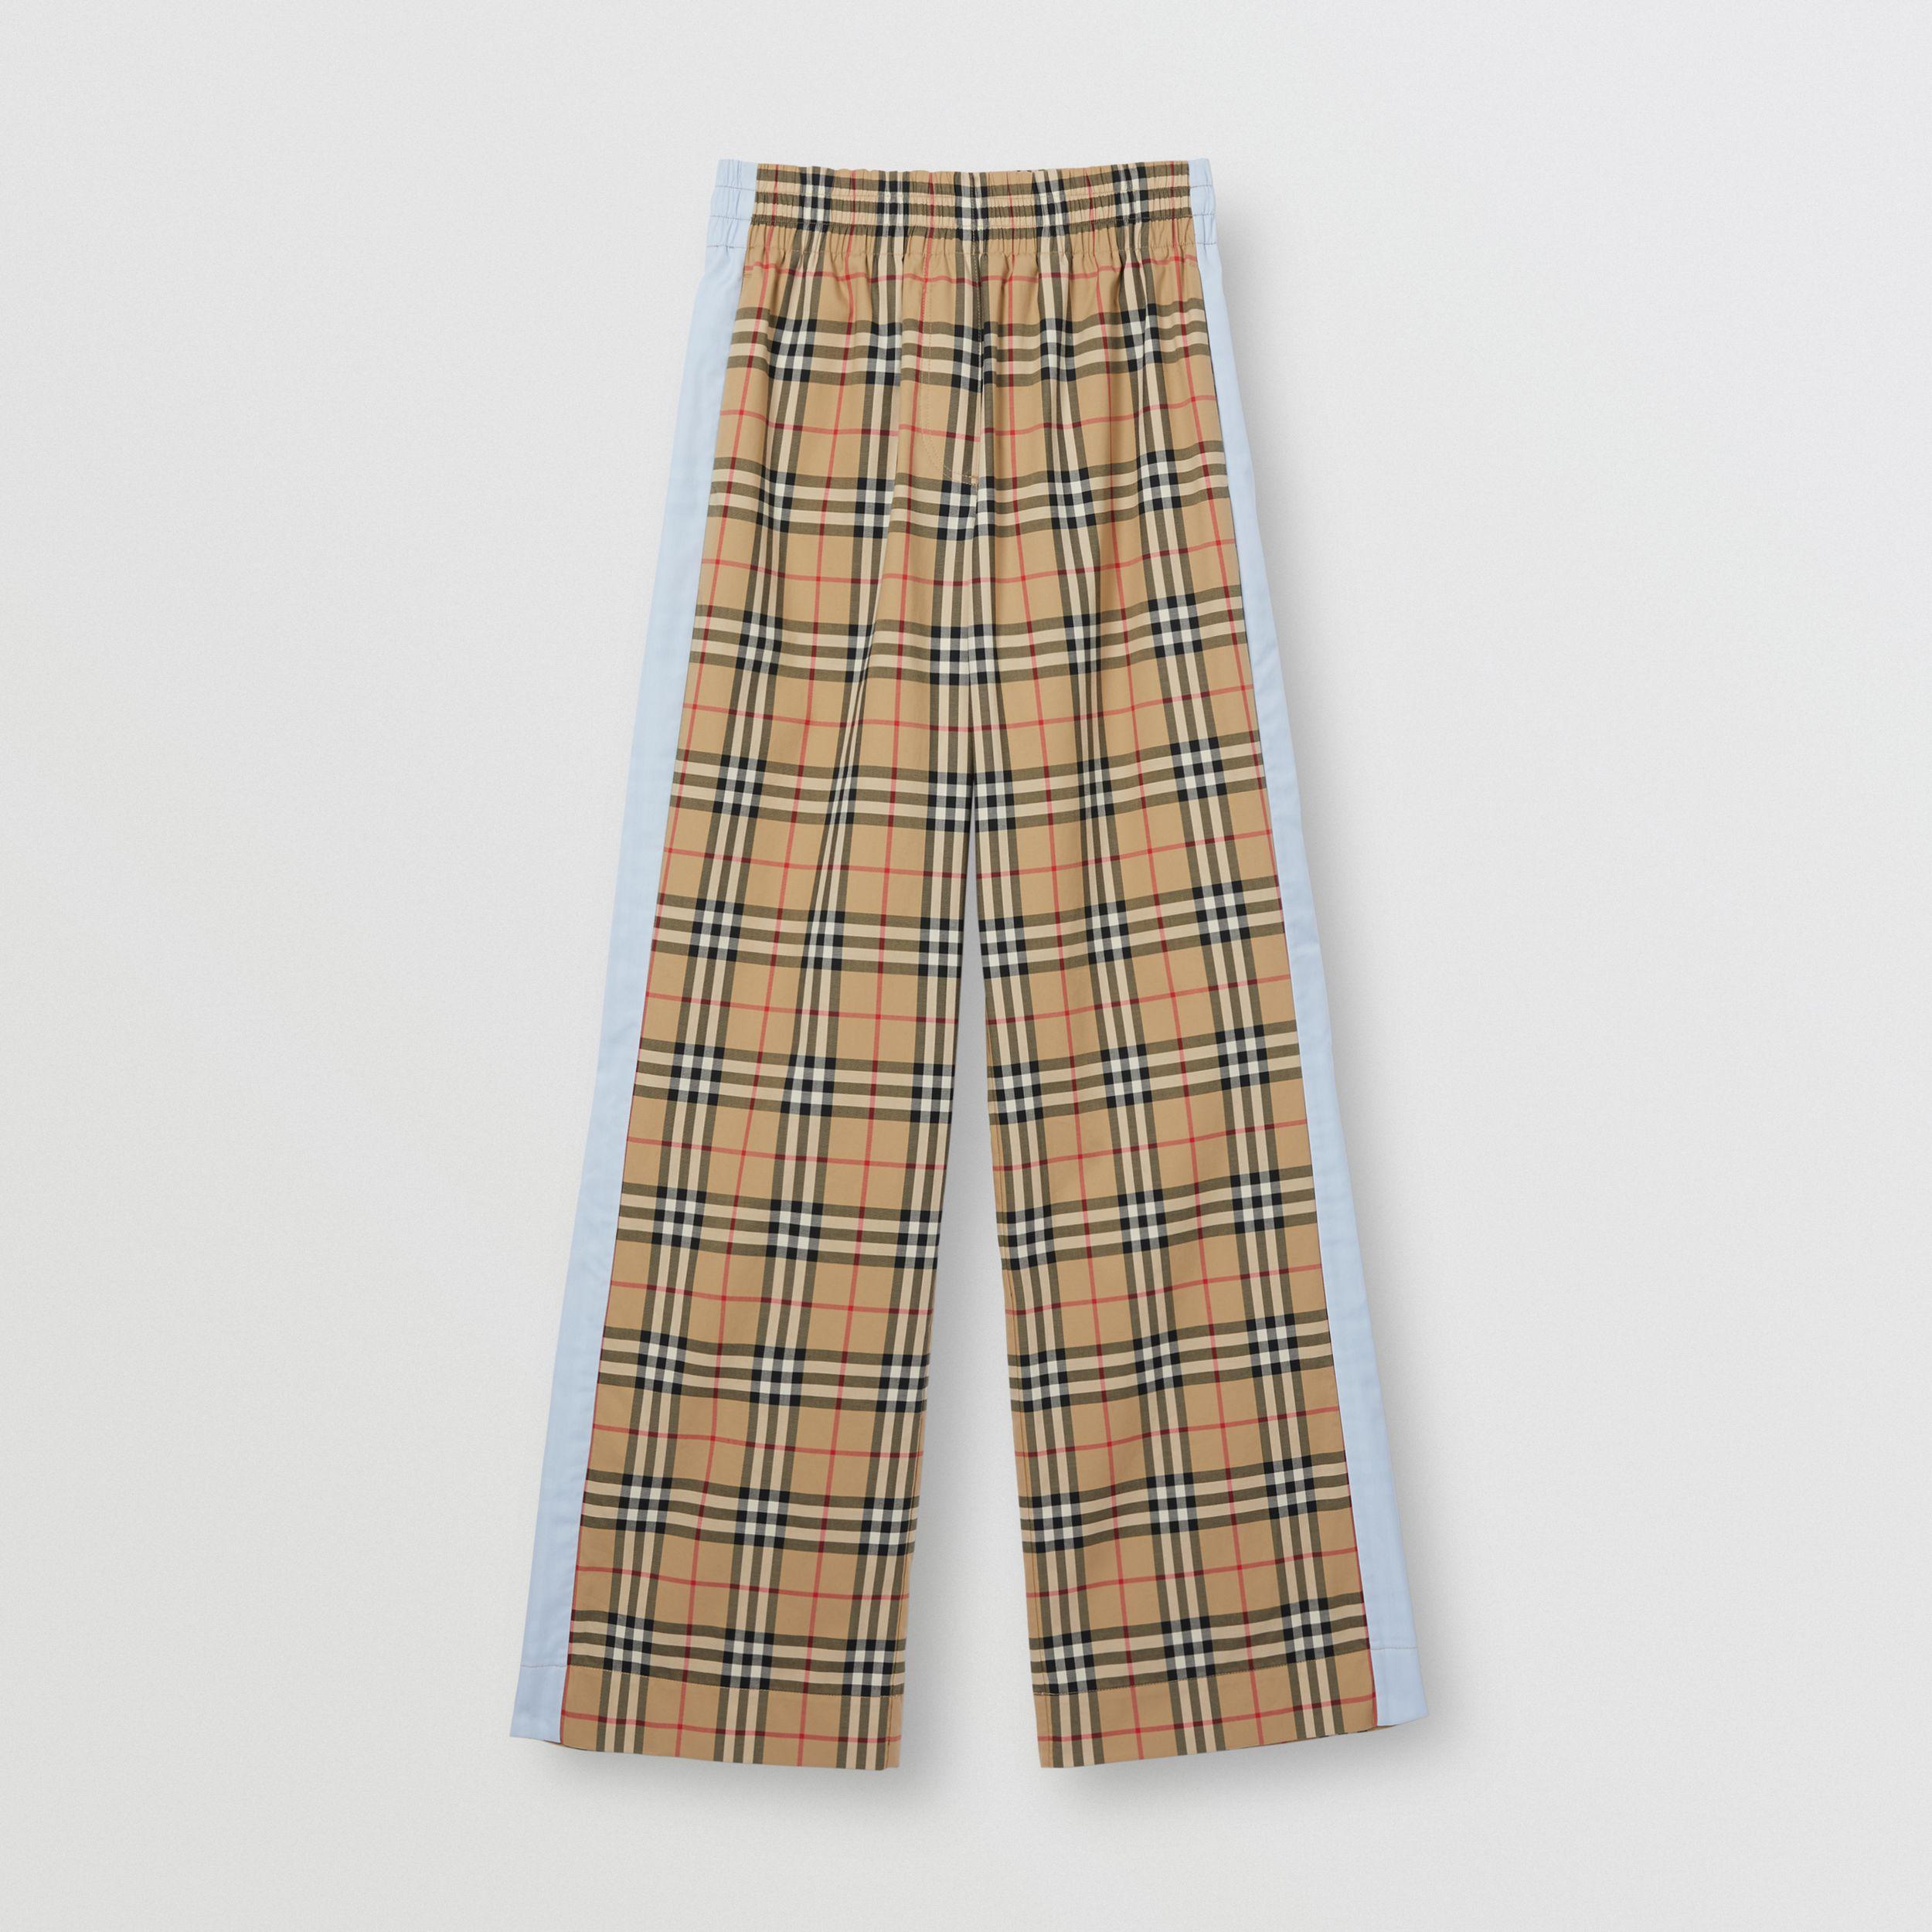 Vintage Check Stretch Cotton Trousers in Archive Beige - Women | Burberry - 4